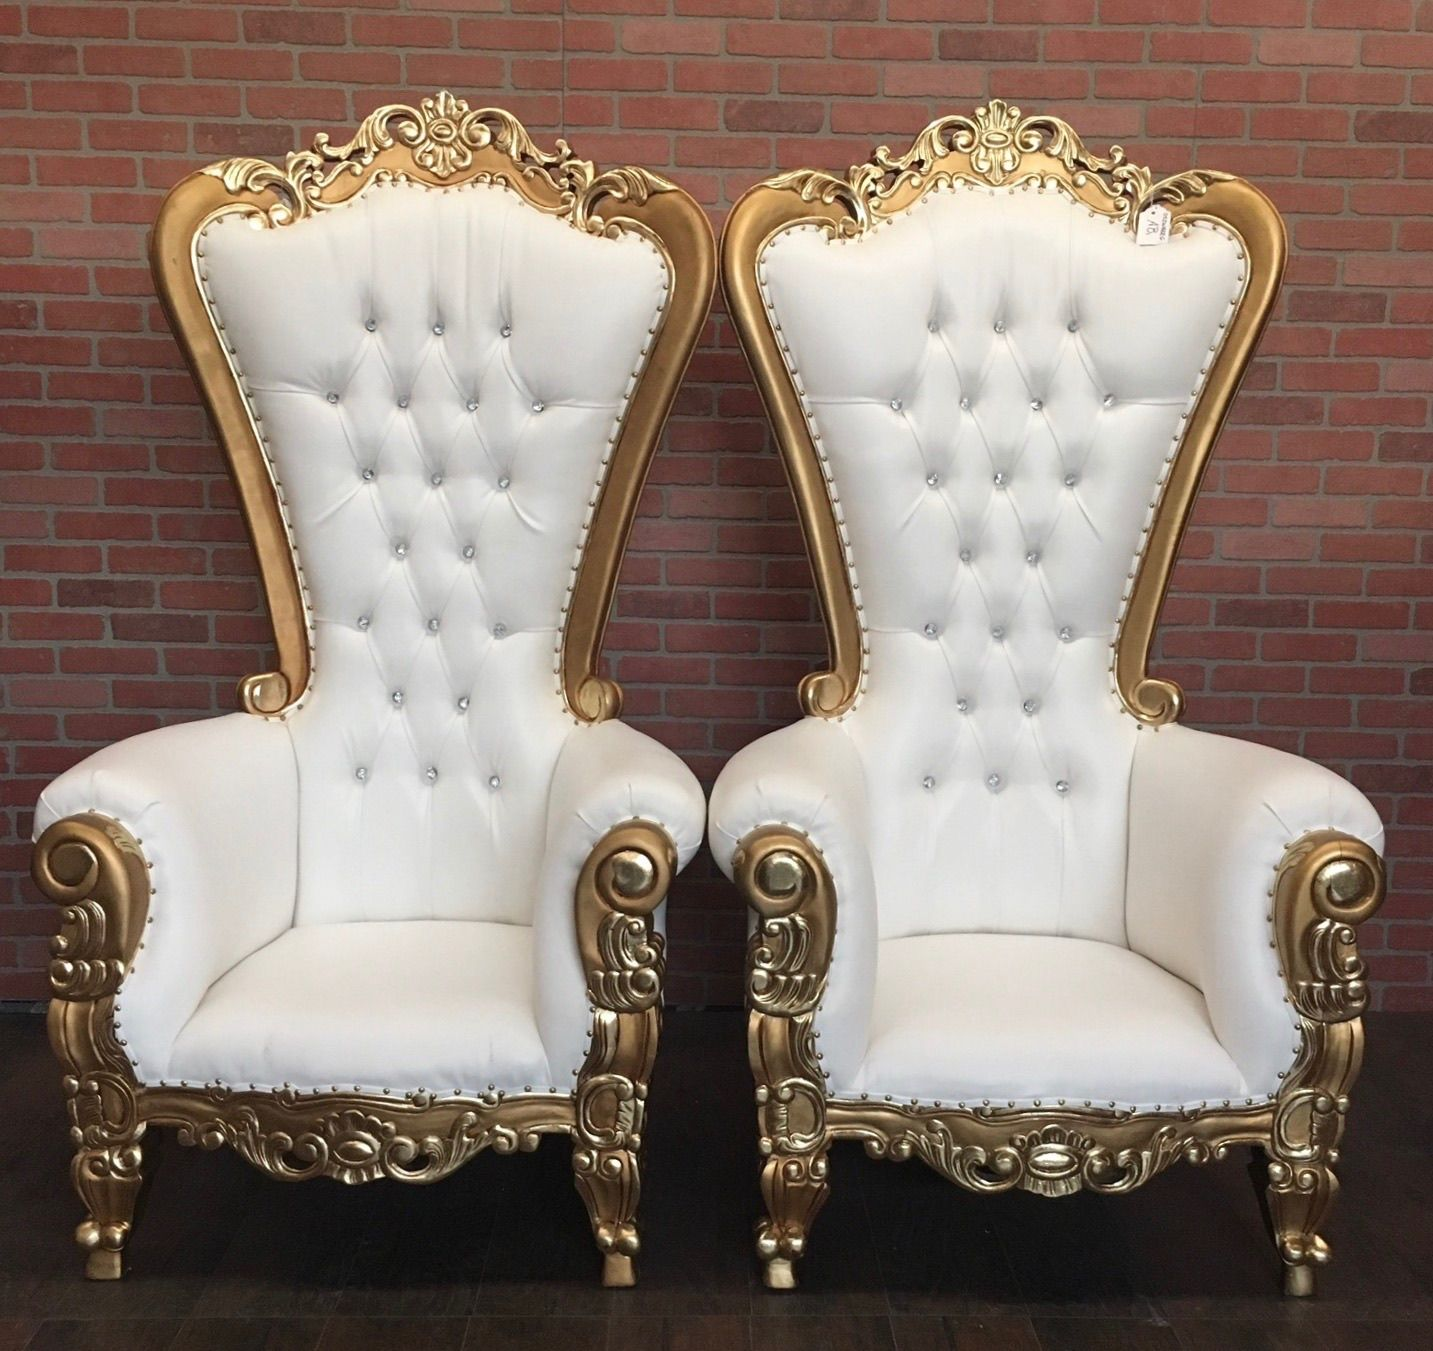 Best Absolom Roche Two Chair Set 10 Discount Gold White 400 x 300